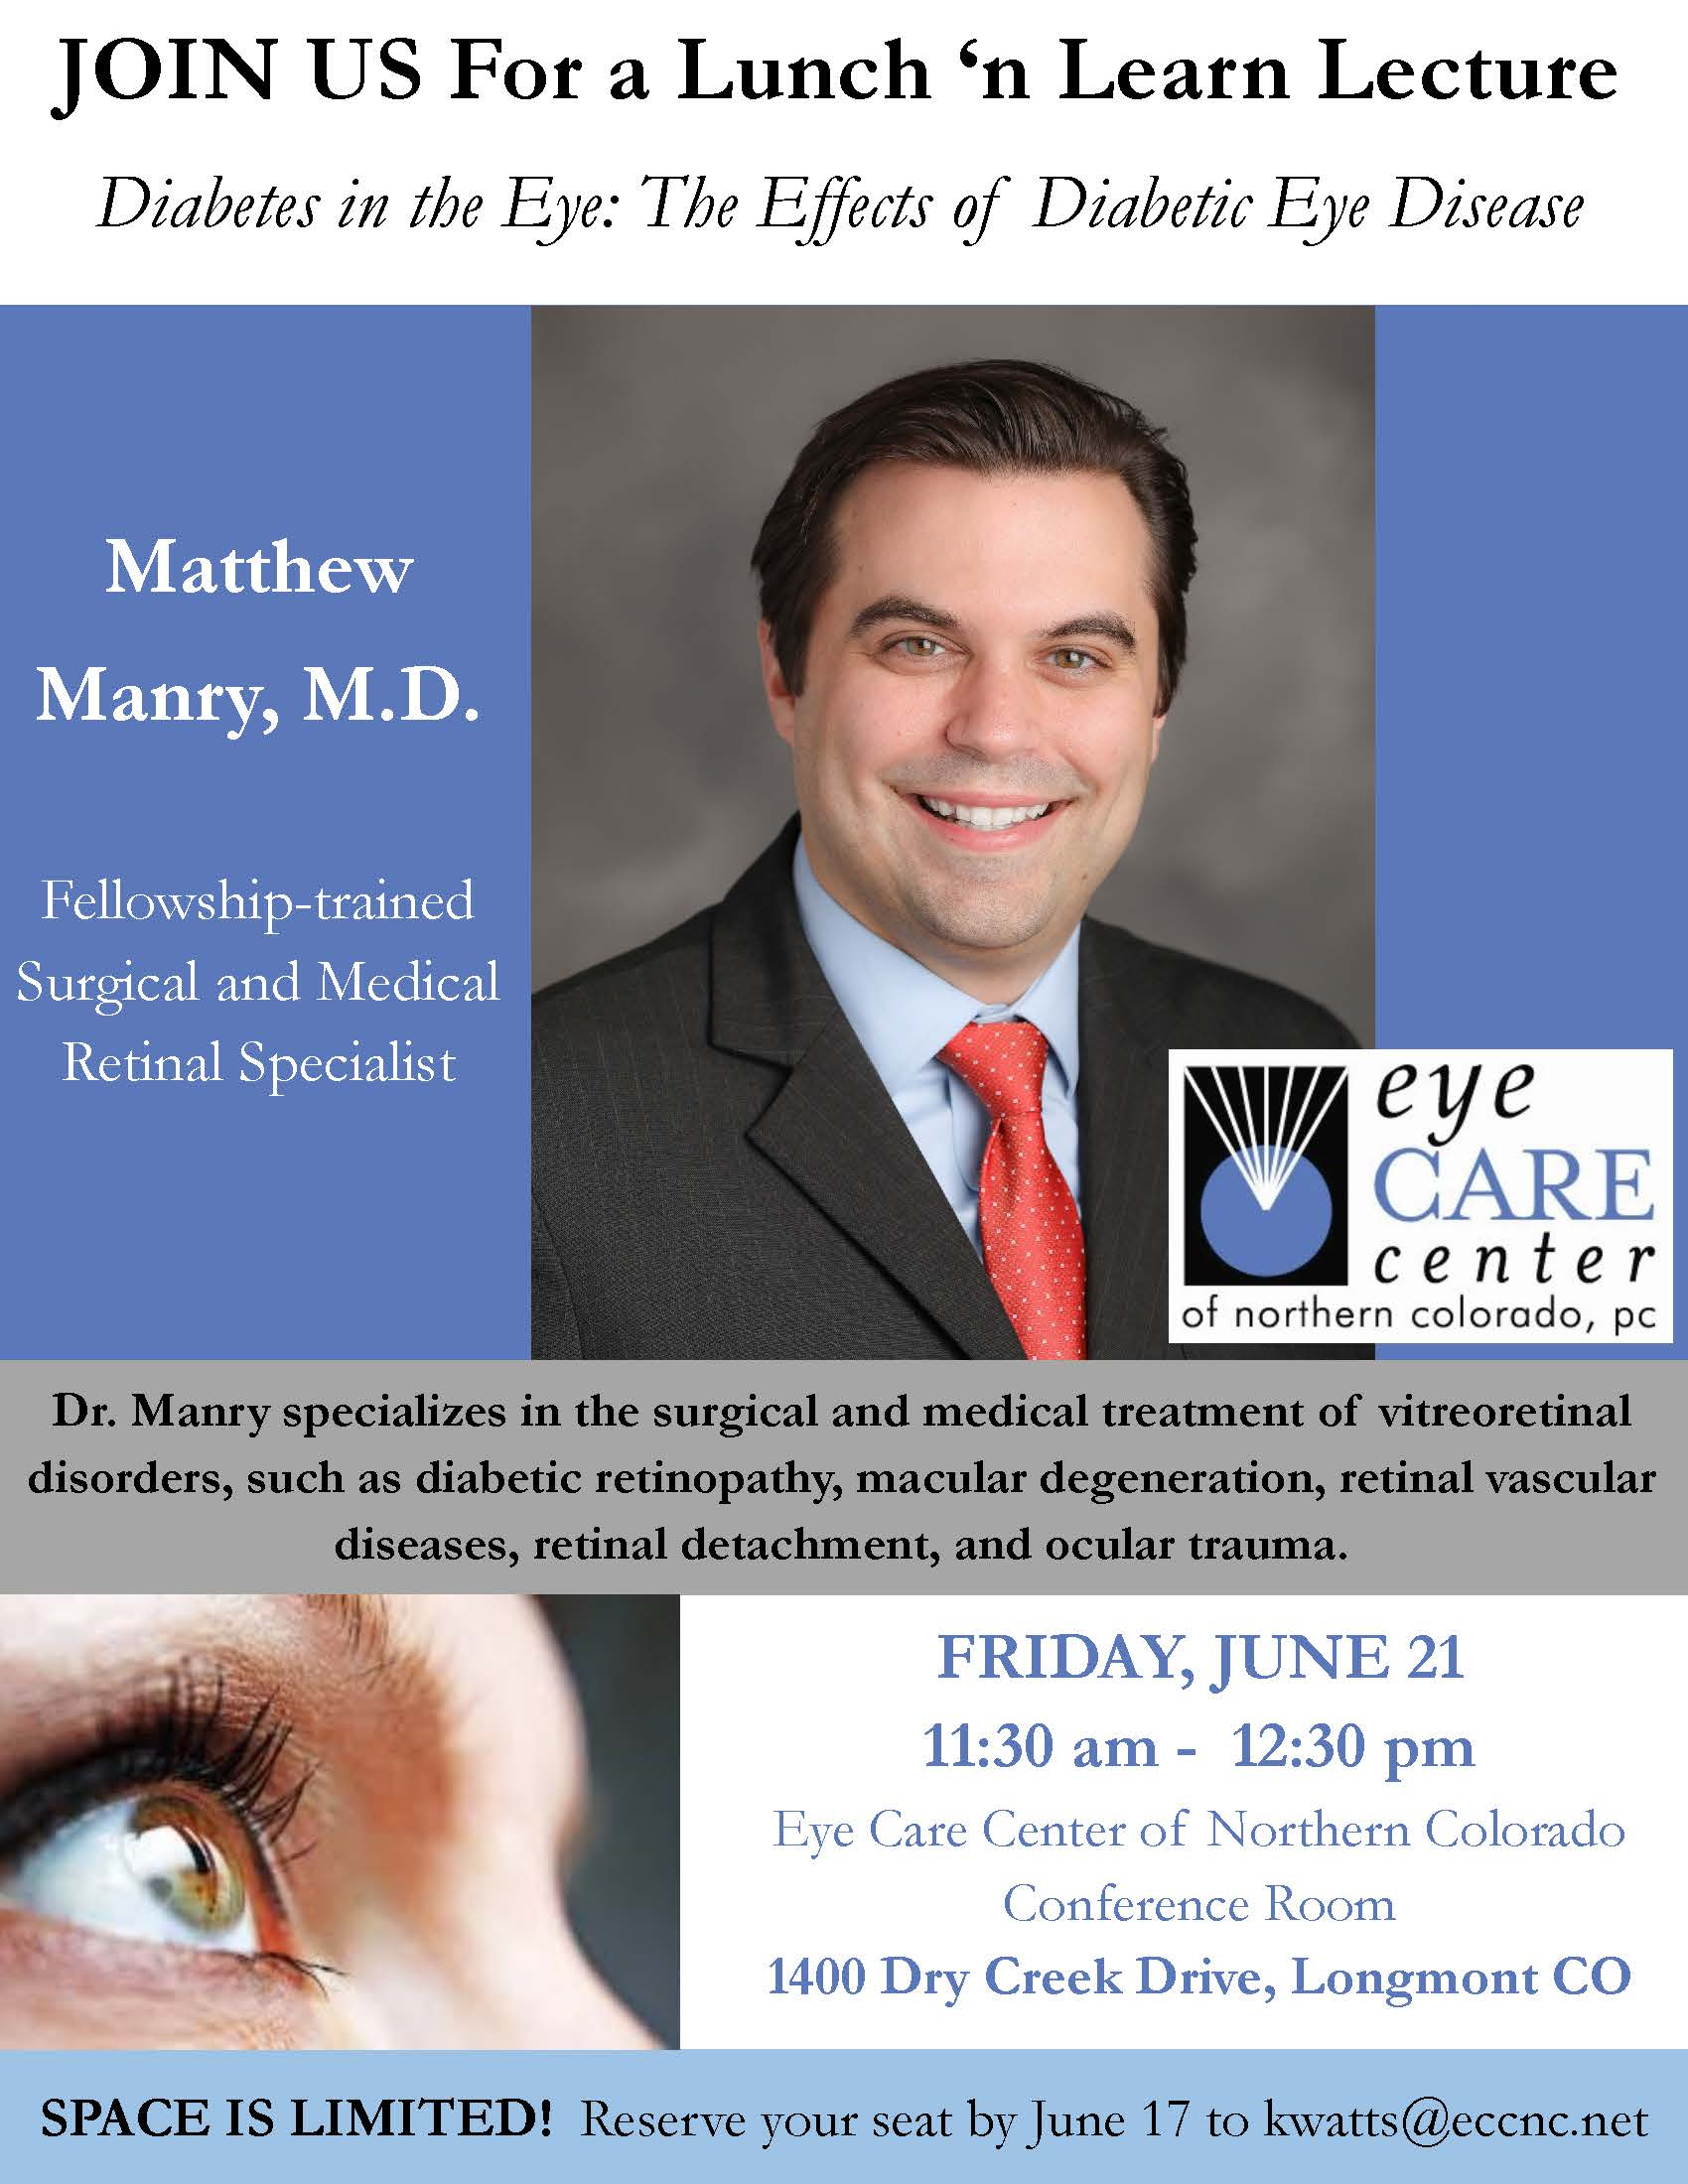 Boulder Eye Care & Surgery Center Doctors June 2019 Diabetes in the Eye - Anjali Sheth, M.D.